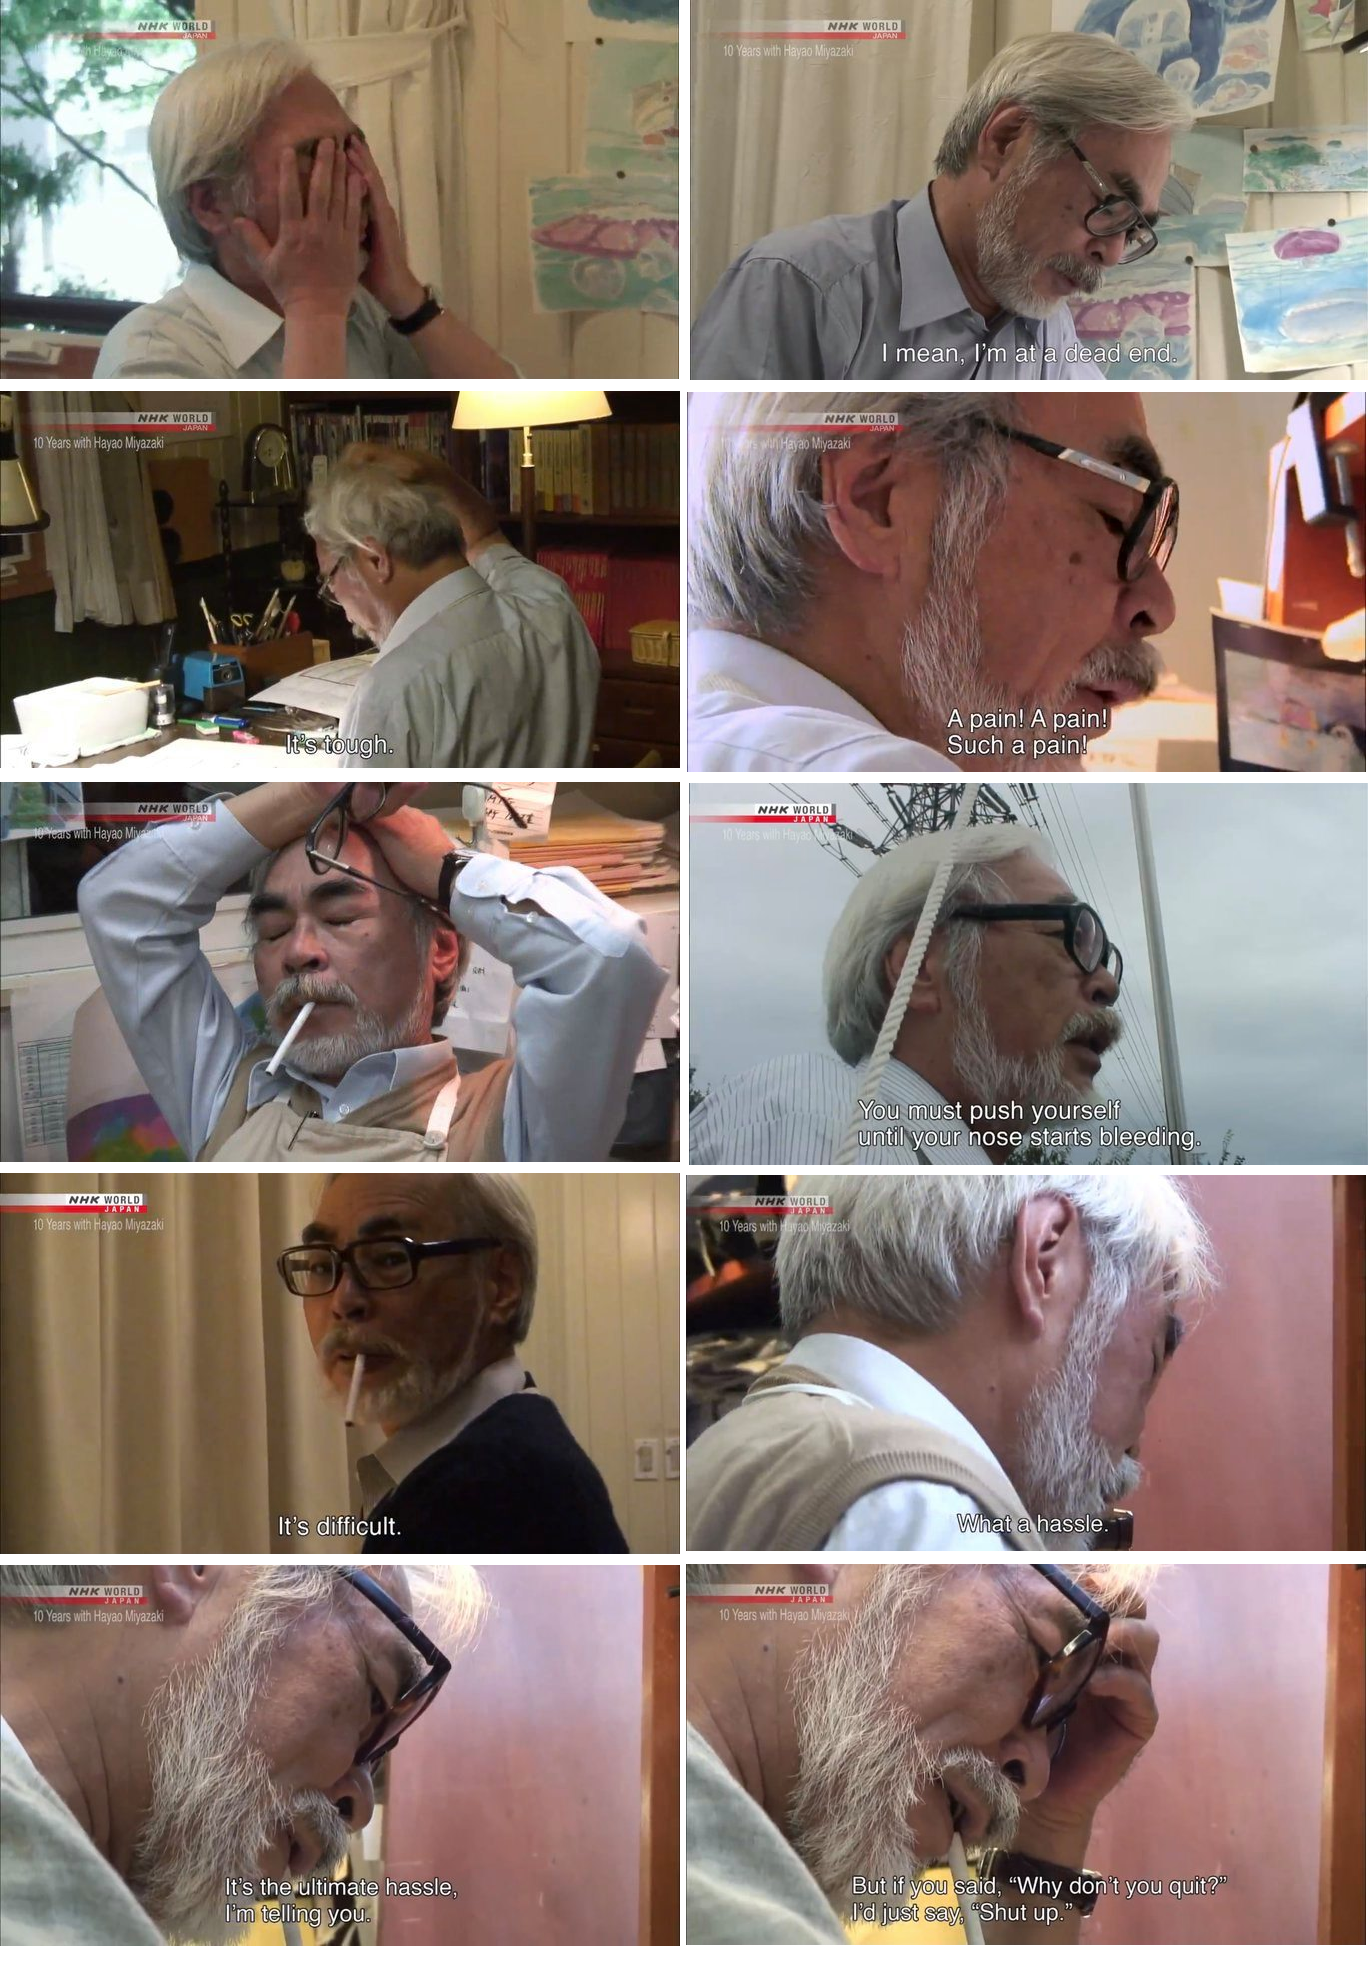 [Image] From Hayao Miyazaki one of the best animators in the world.